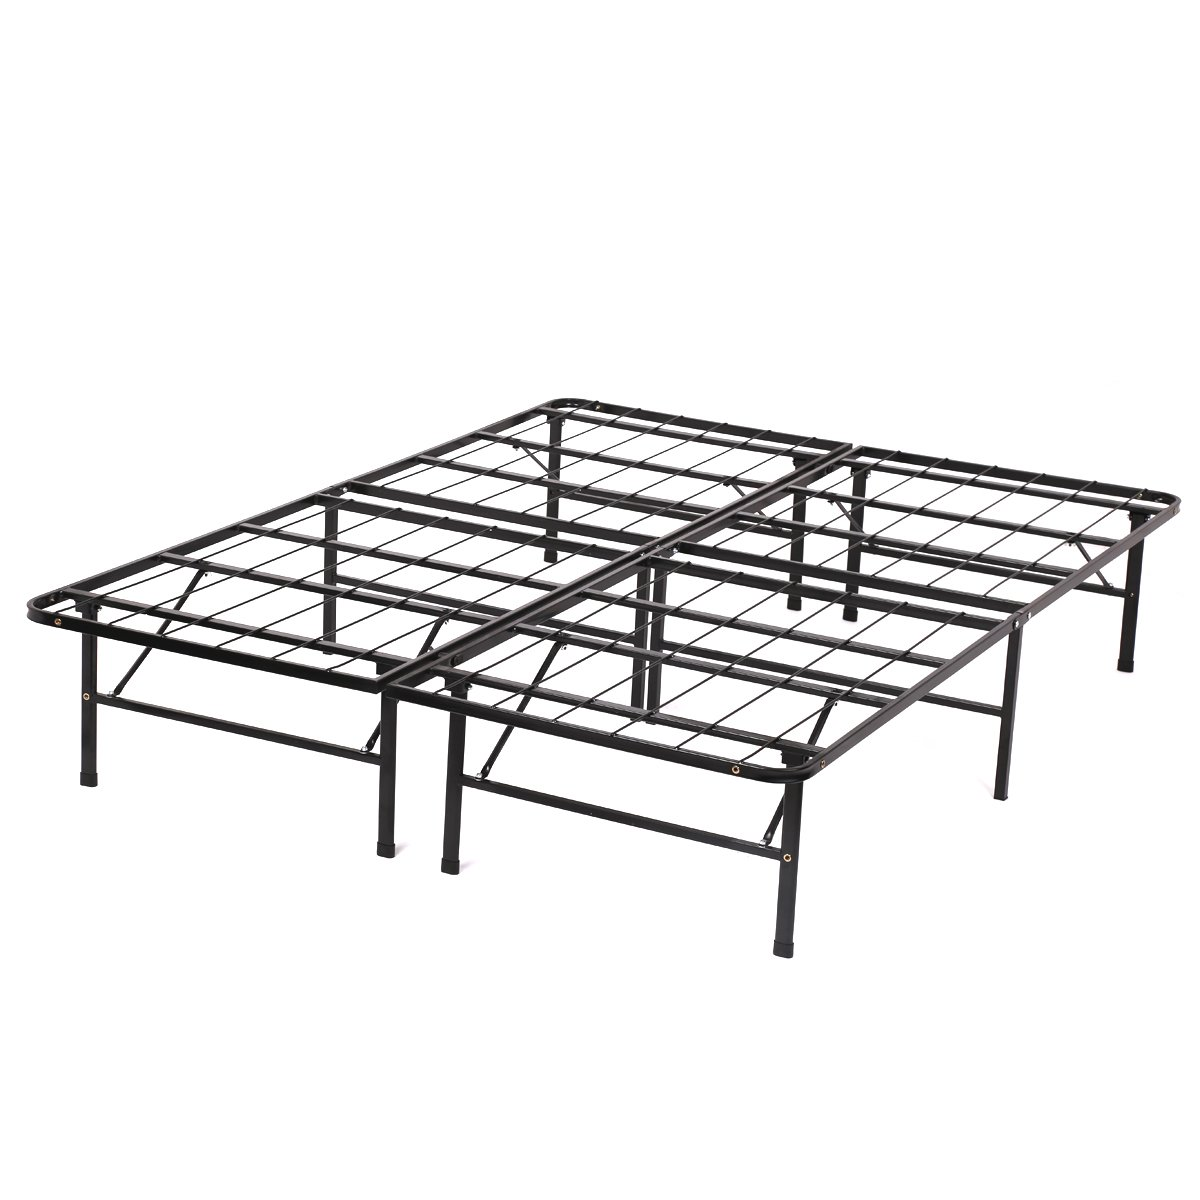 PayLessHere Bed Frame Box Spring Queen Folding Metal Mattress Foundation